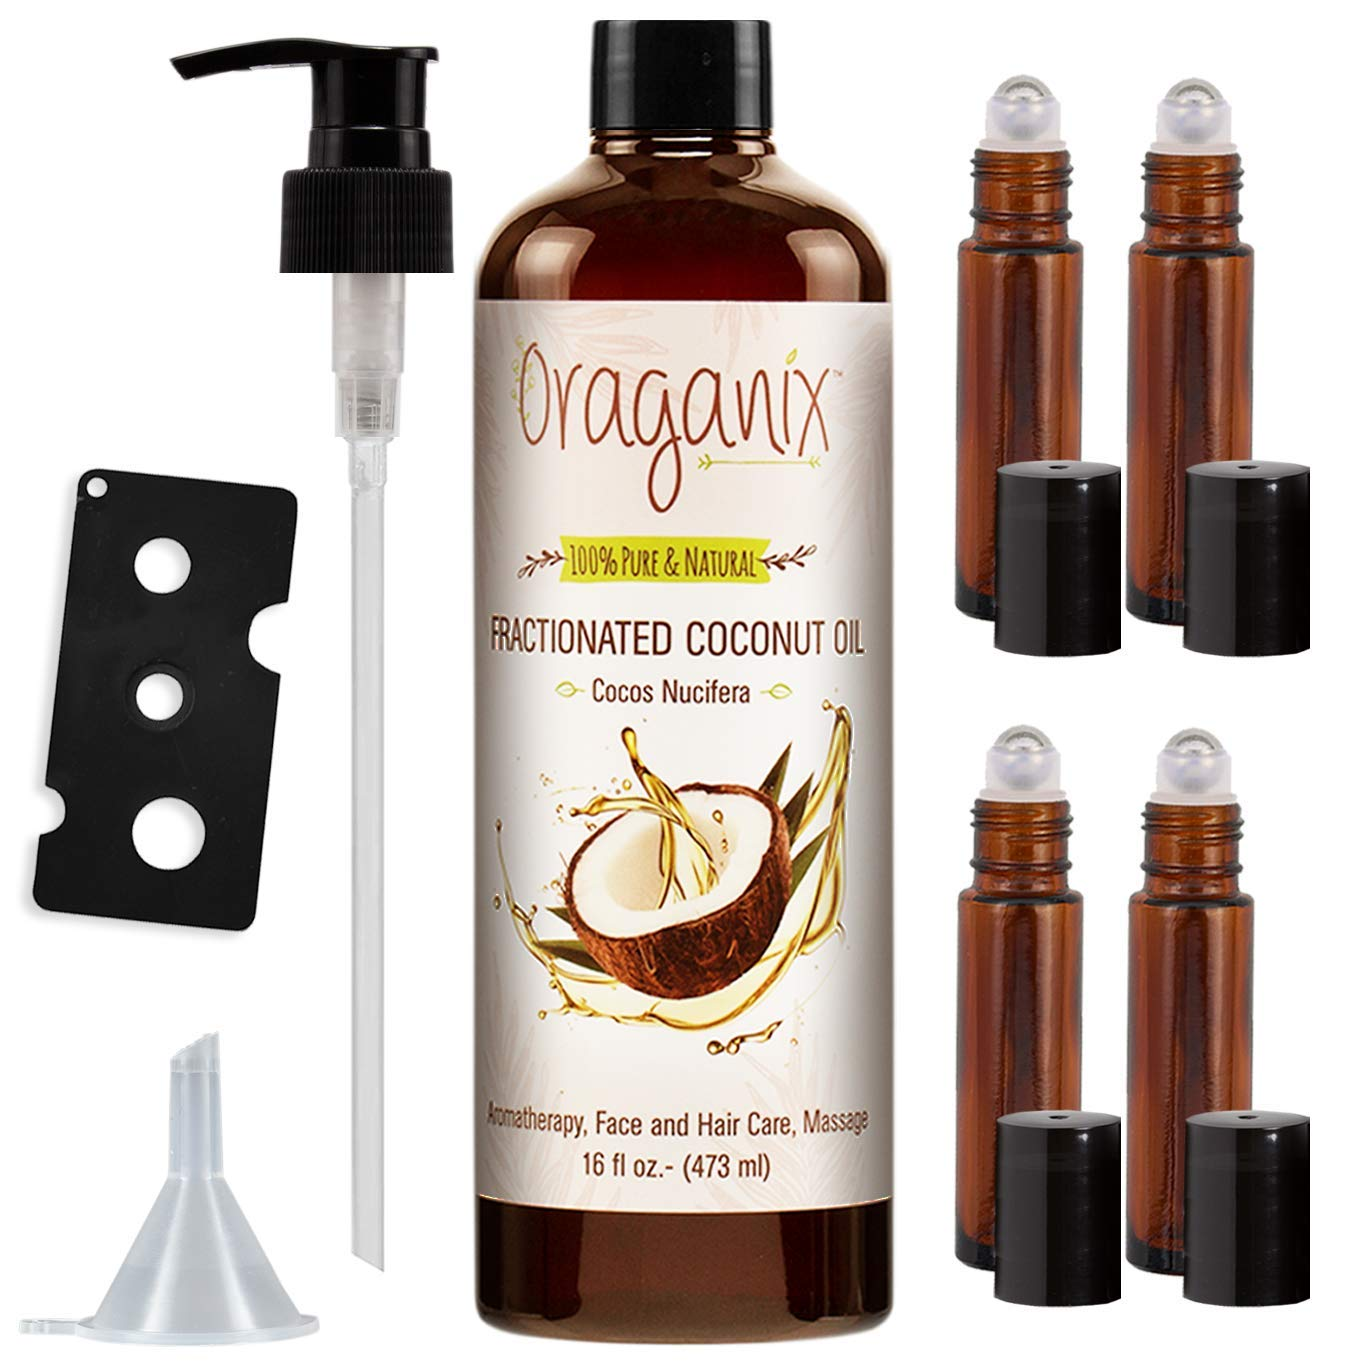 Oraganix Fractionated Coconut Oil with Roller Bottles -  100% Pure Natural 16 Oz Coconut Oil, 2ml Essential Oil Roller Bottles, Caps, Funnel and Bottle Opener - for Massage Oil, Skin and Hair Care by Oraganix